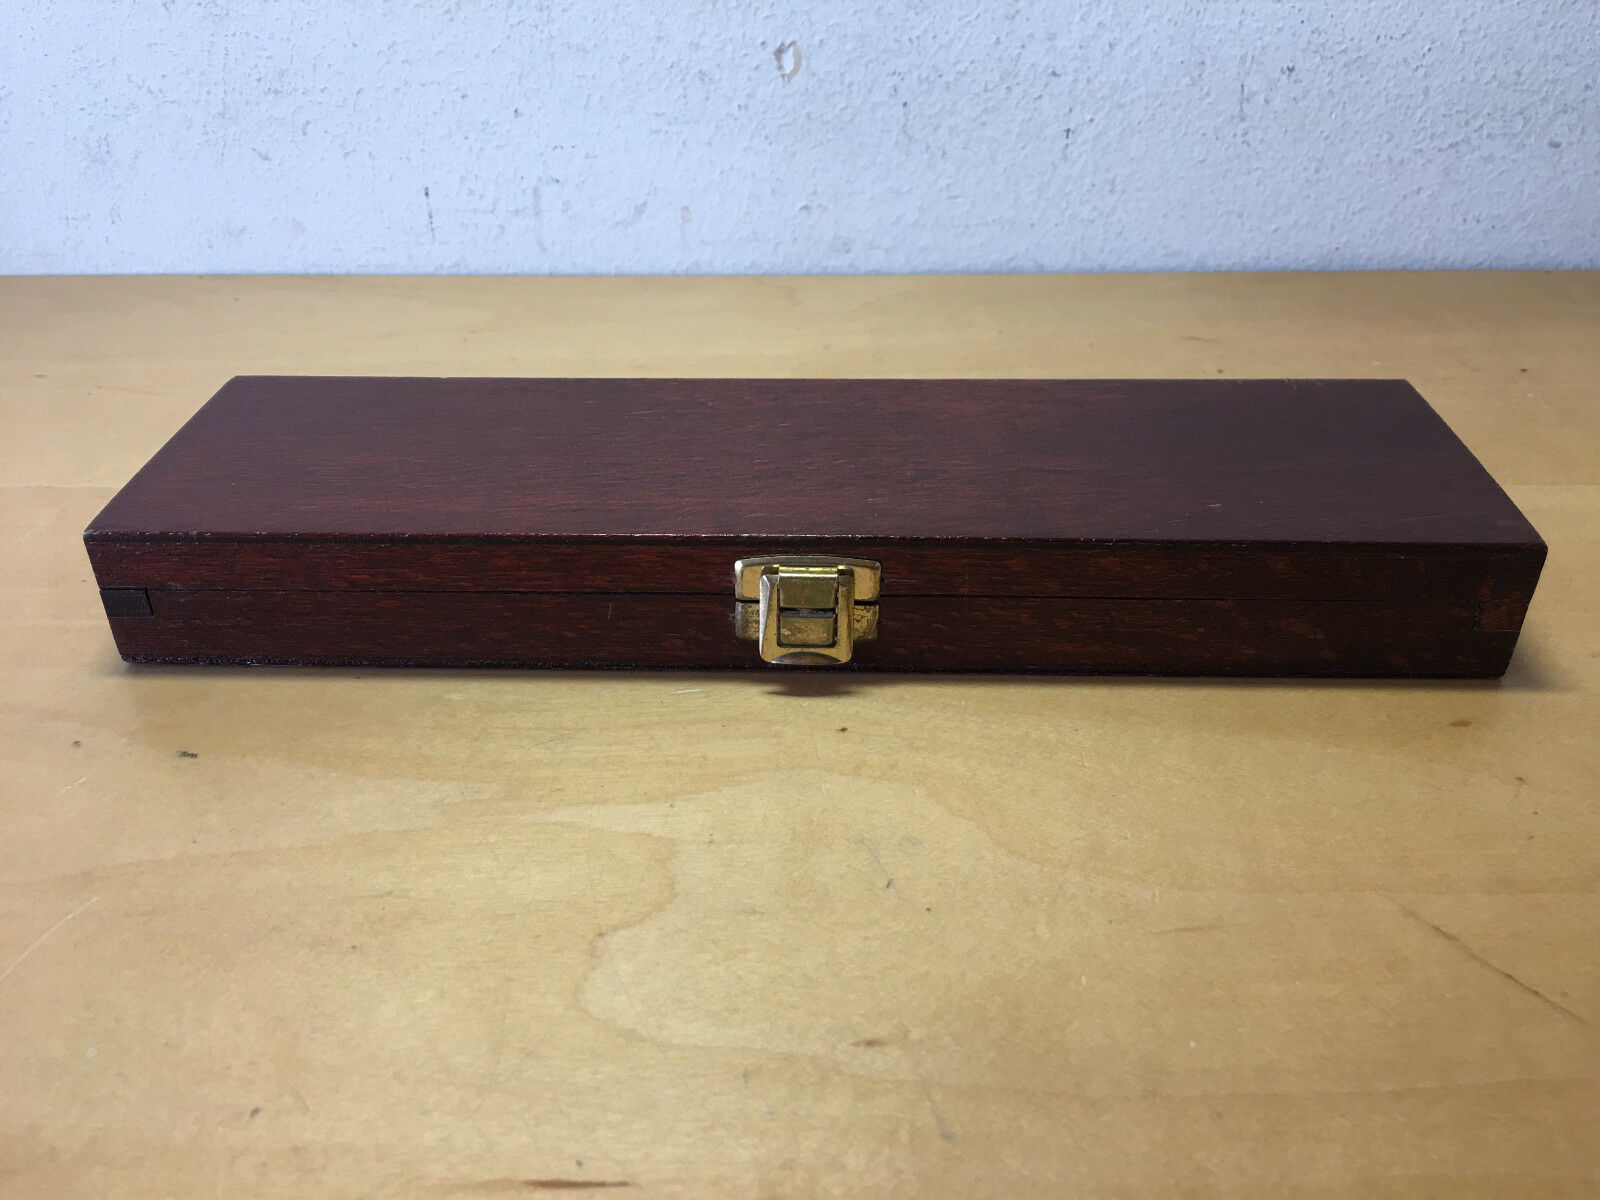 Used - CASE Box Box CASE - Wood Wood - 9 13 16x2 13 16x1 1 8in - Used